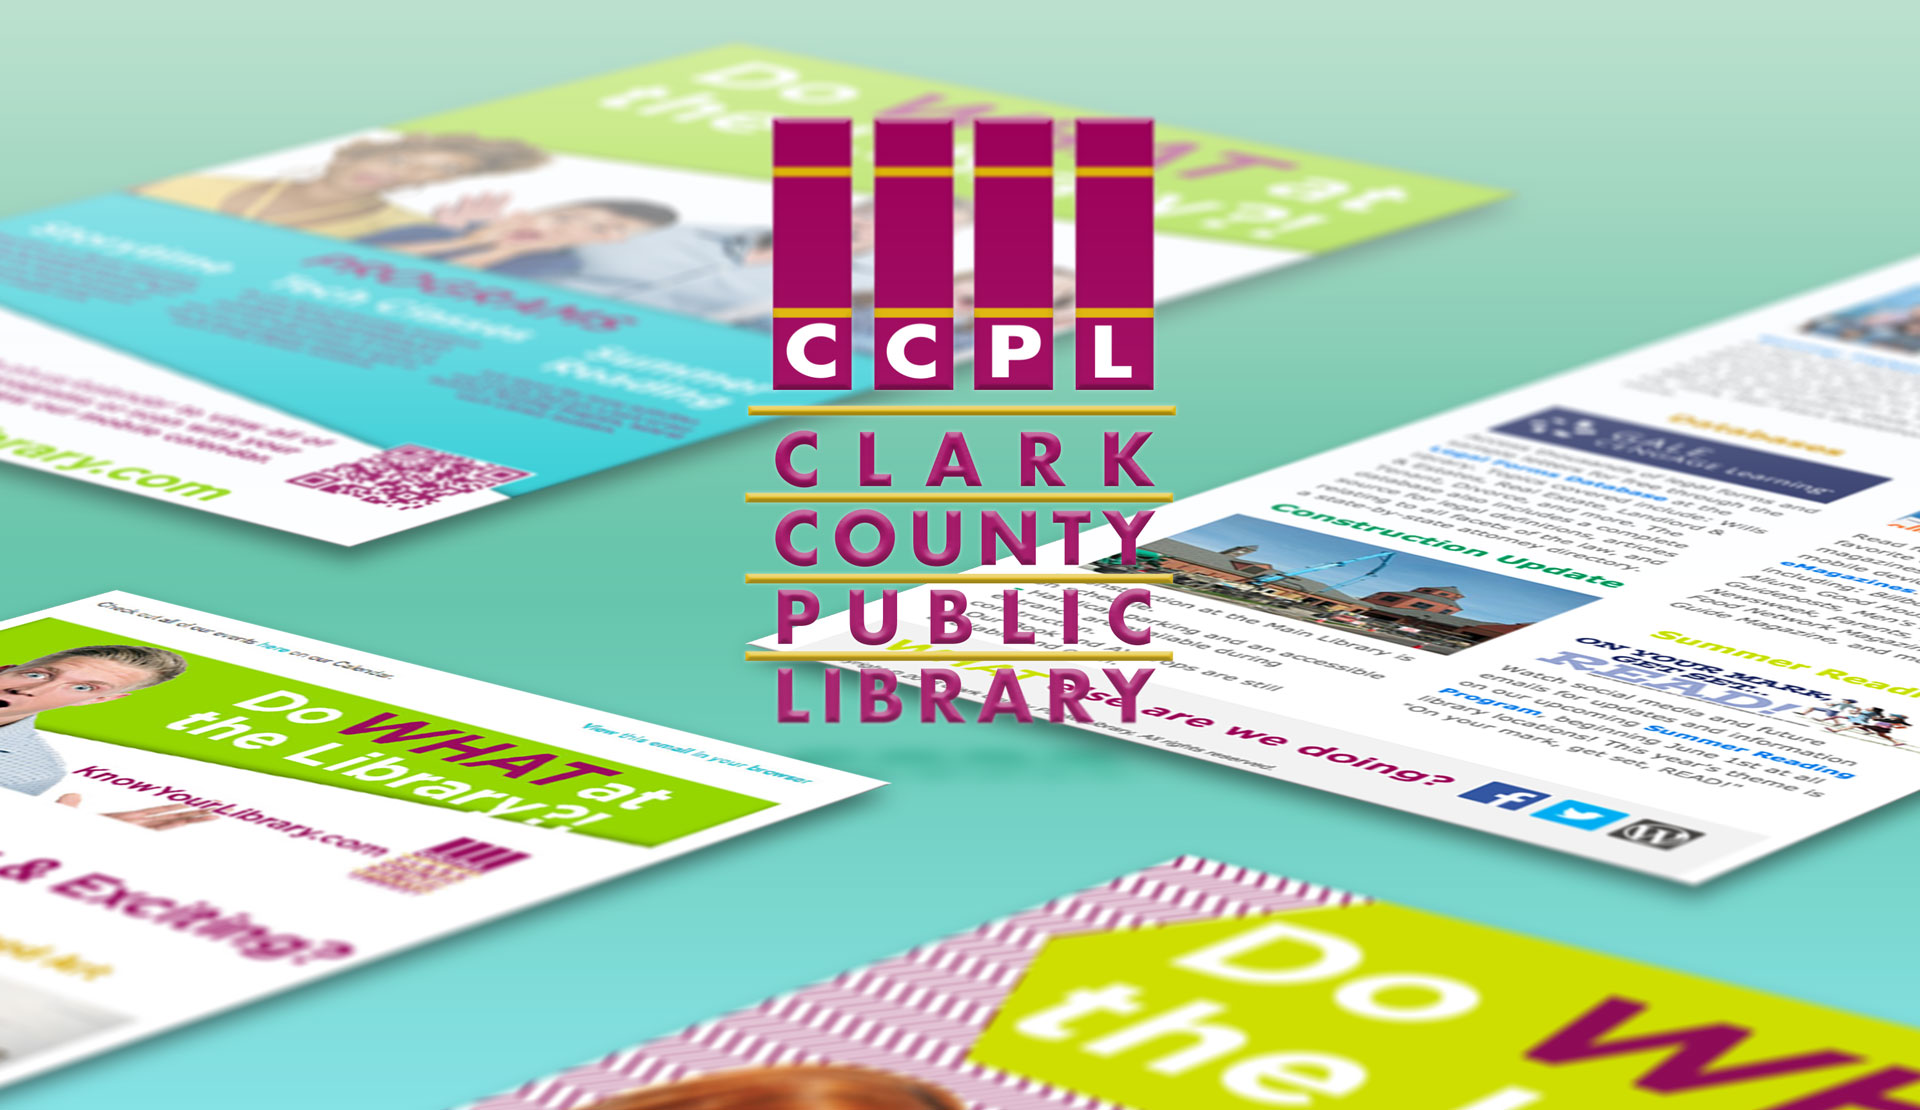 Clark County Public Library Logo and Creative Collage on a Mint Green Gradient Background